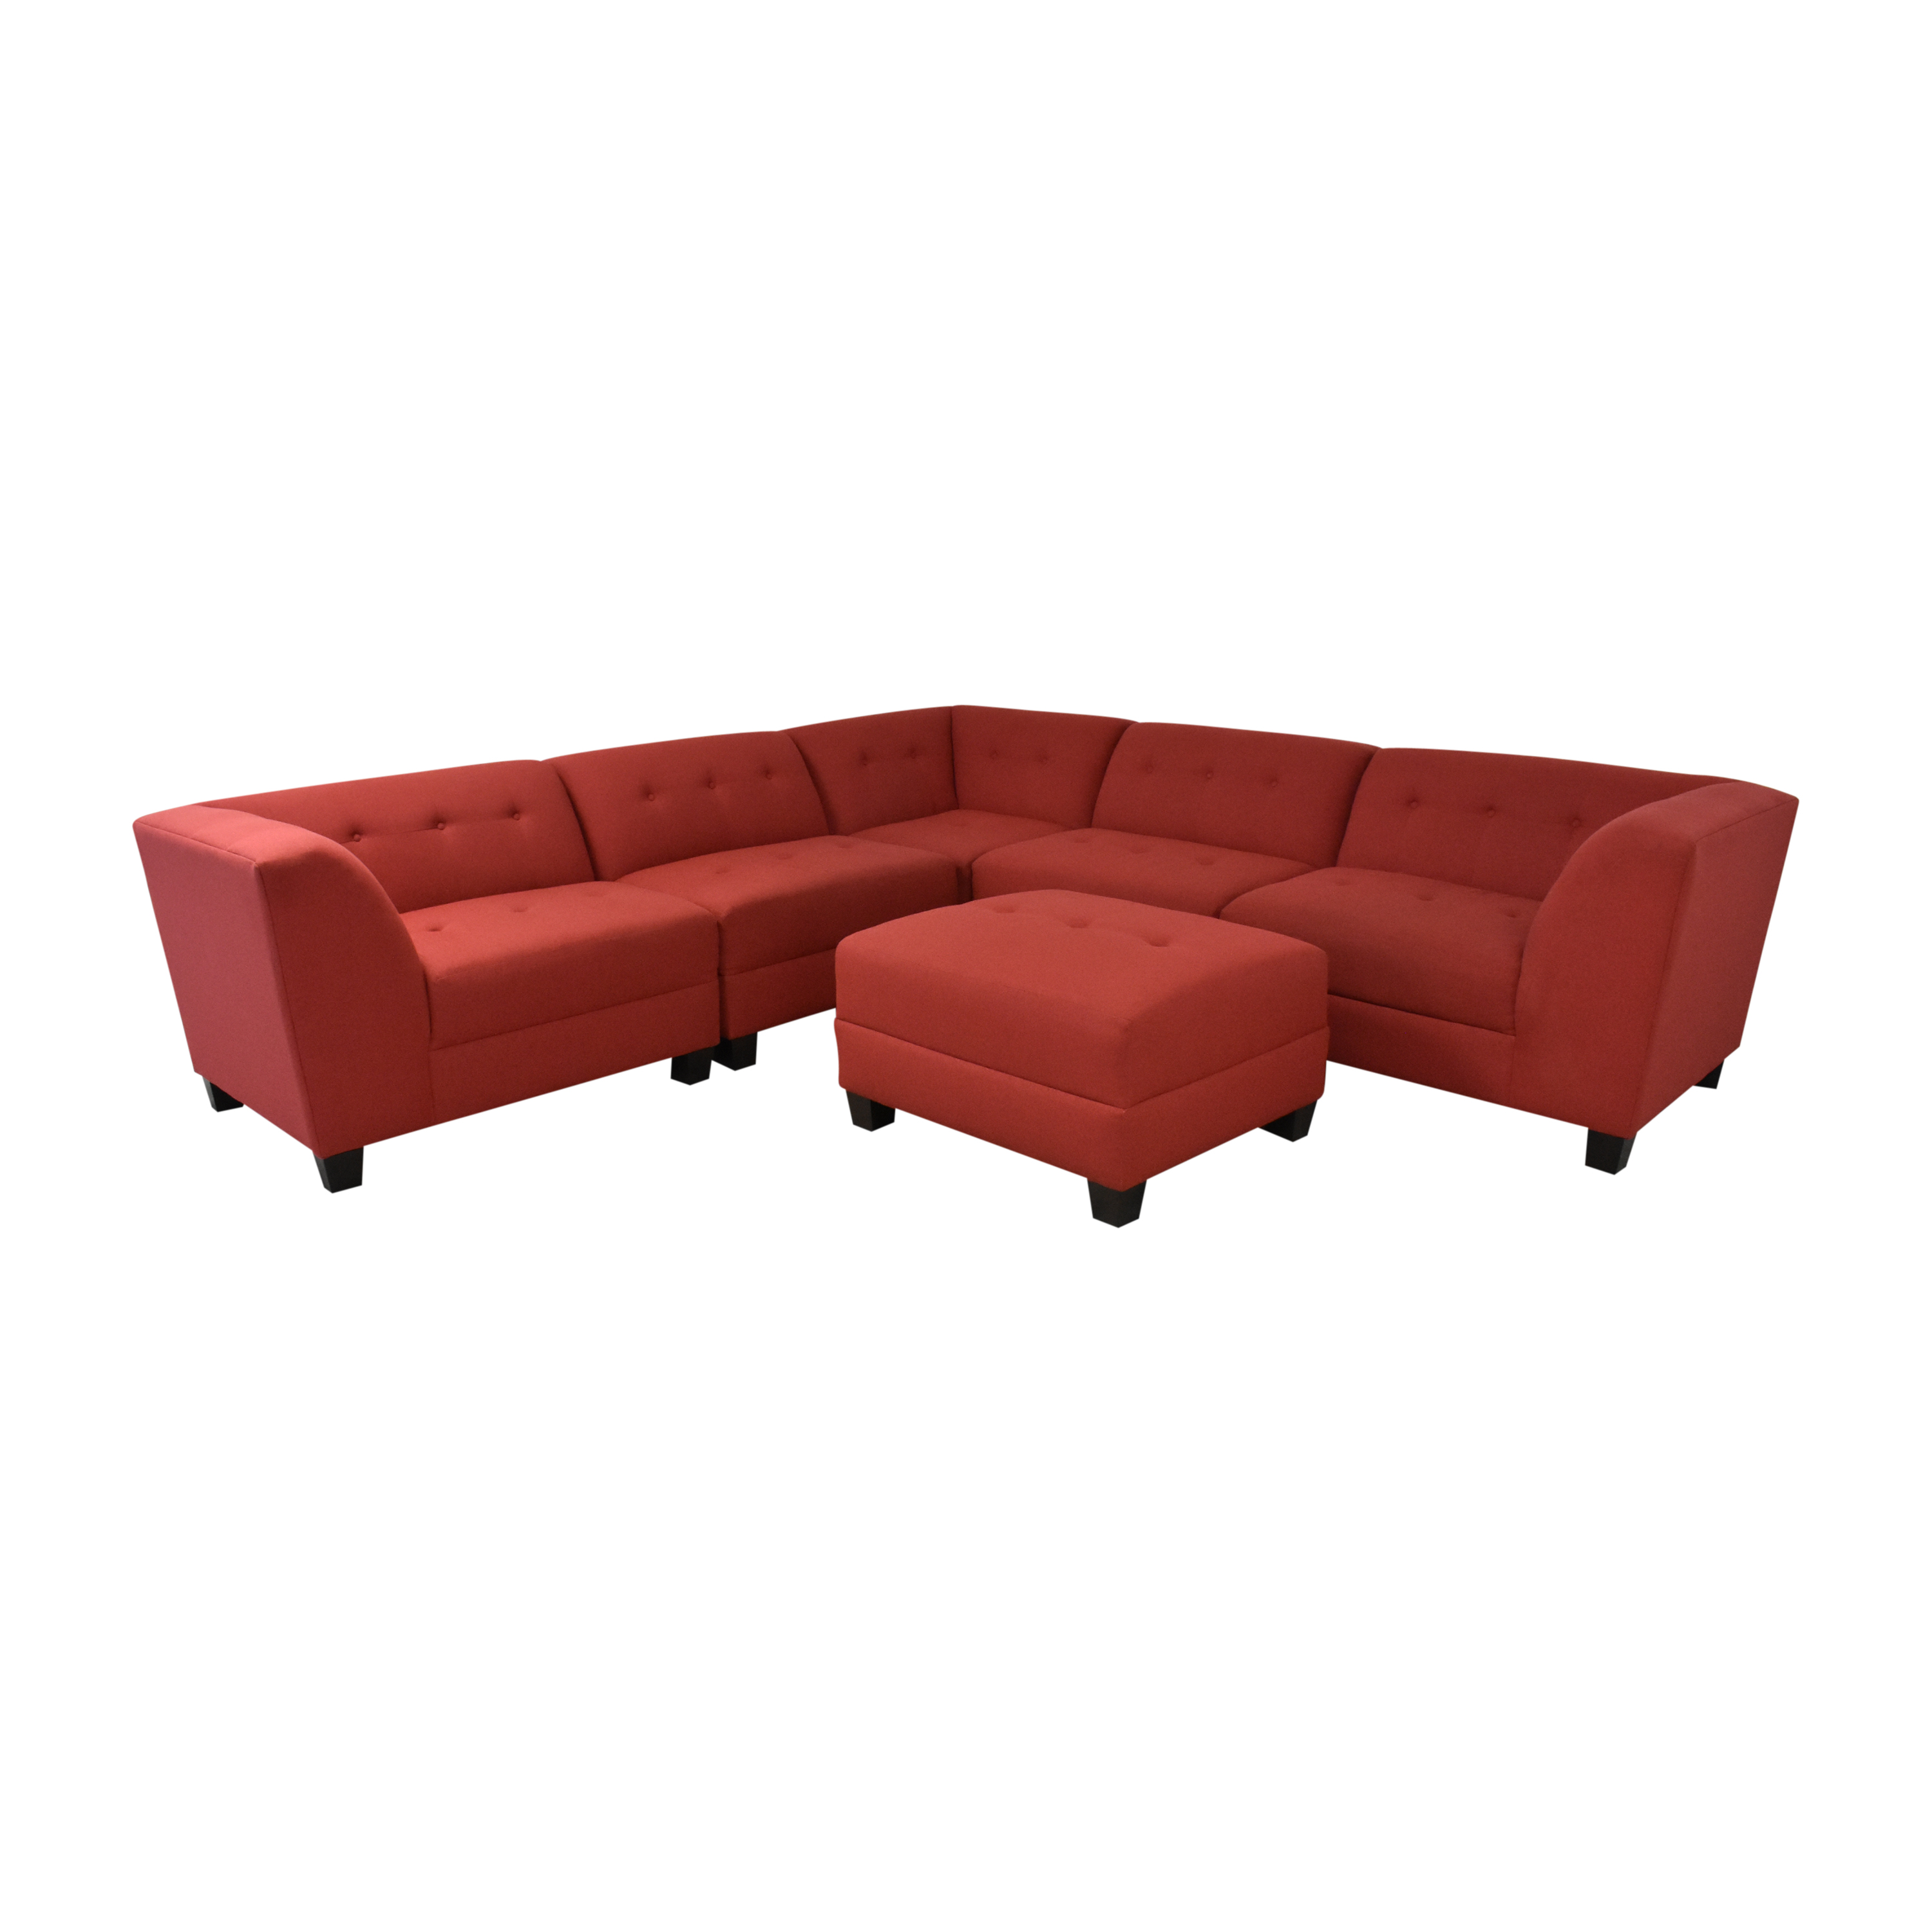 England Furniture England Furniture Miller Five Piece Sectional Sofa with Ottoman Sofas